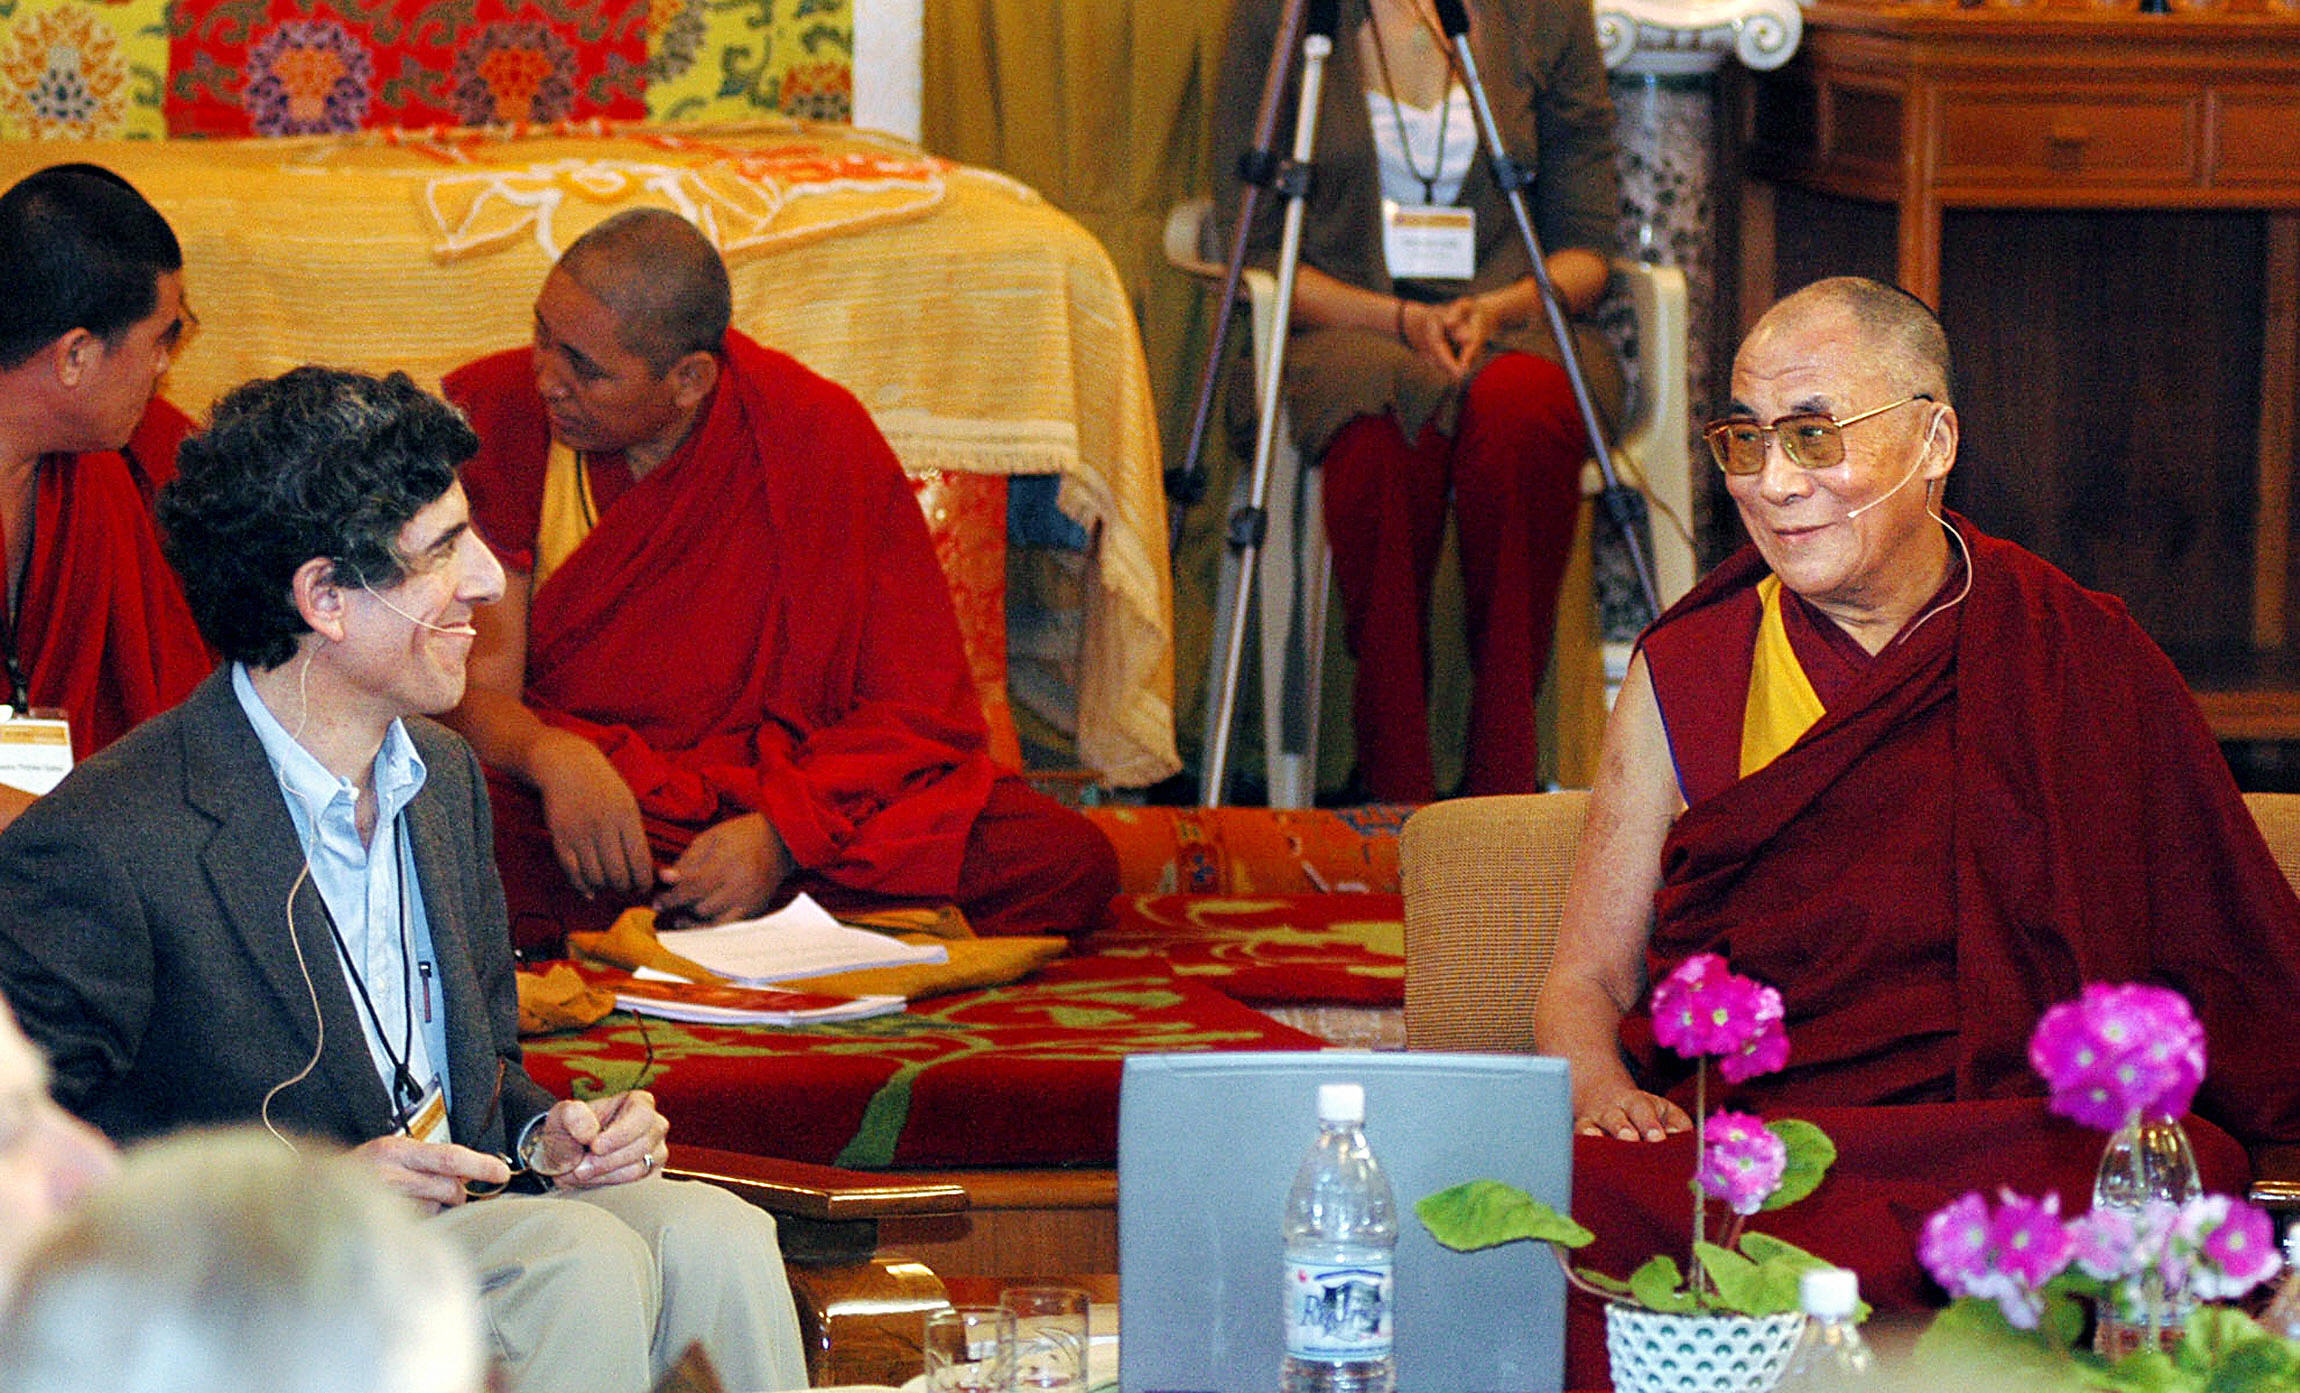 Dr. Davidson and His Holiness the Dalai Lama